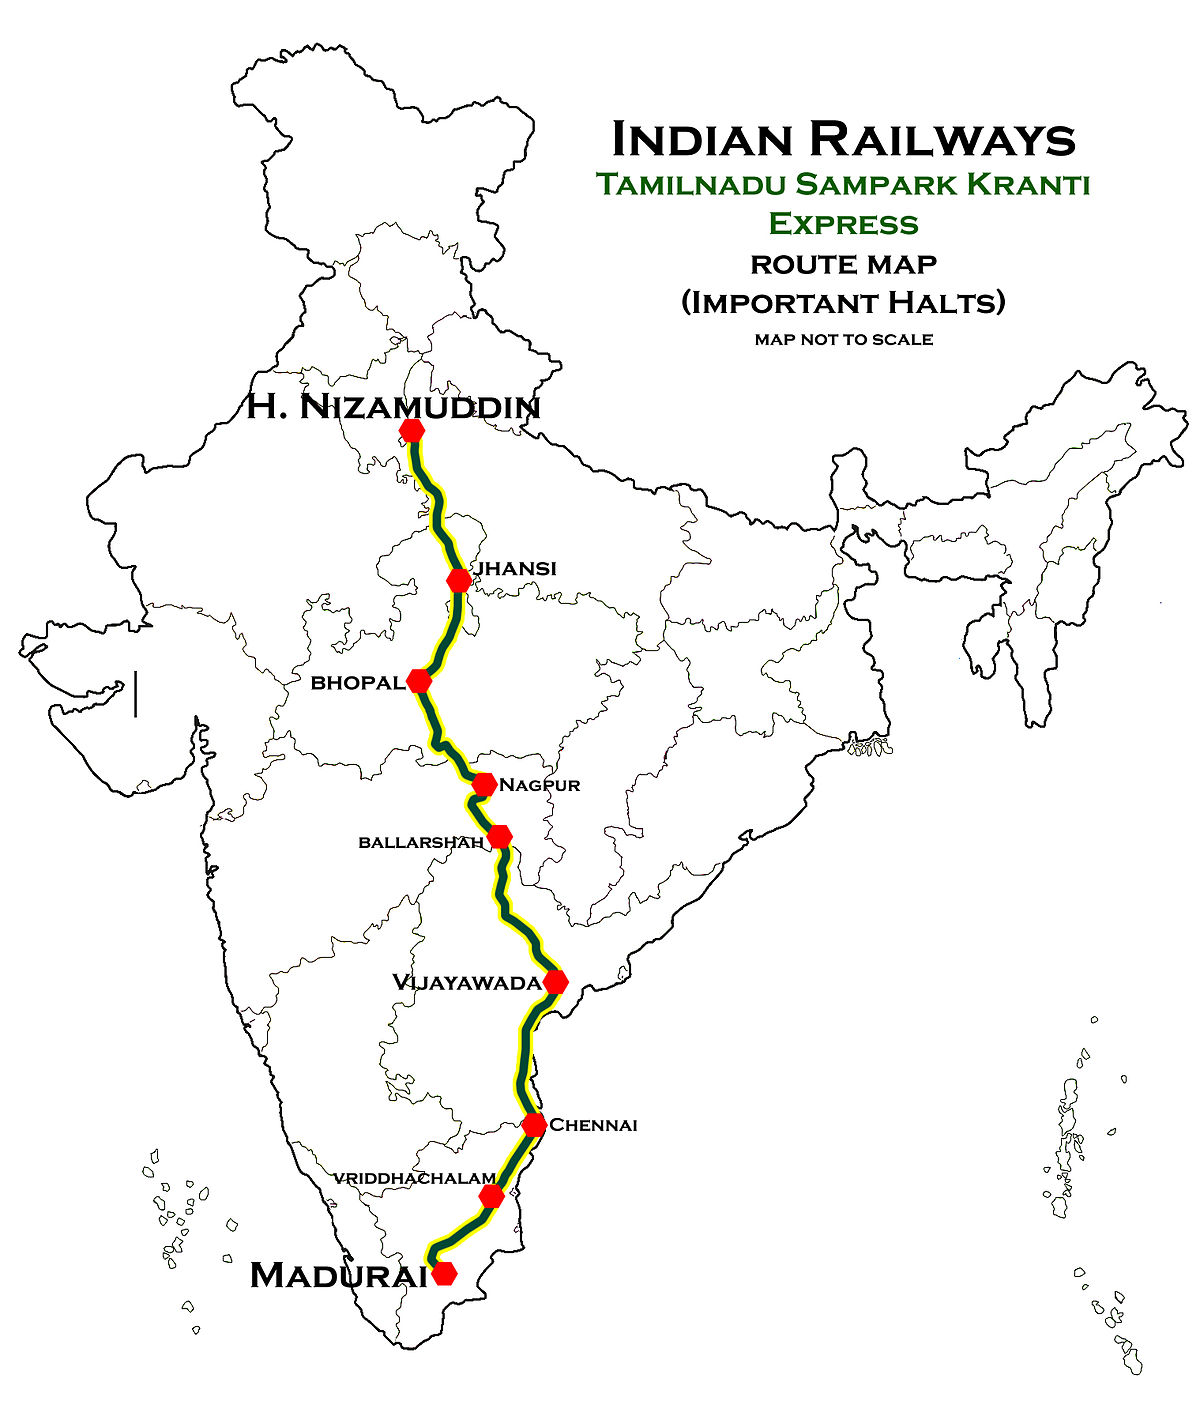 Tamil Nadu Route Map Tamil Nadu Sampark Kranti Express   Wikipedia